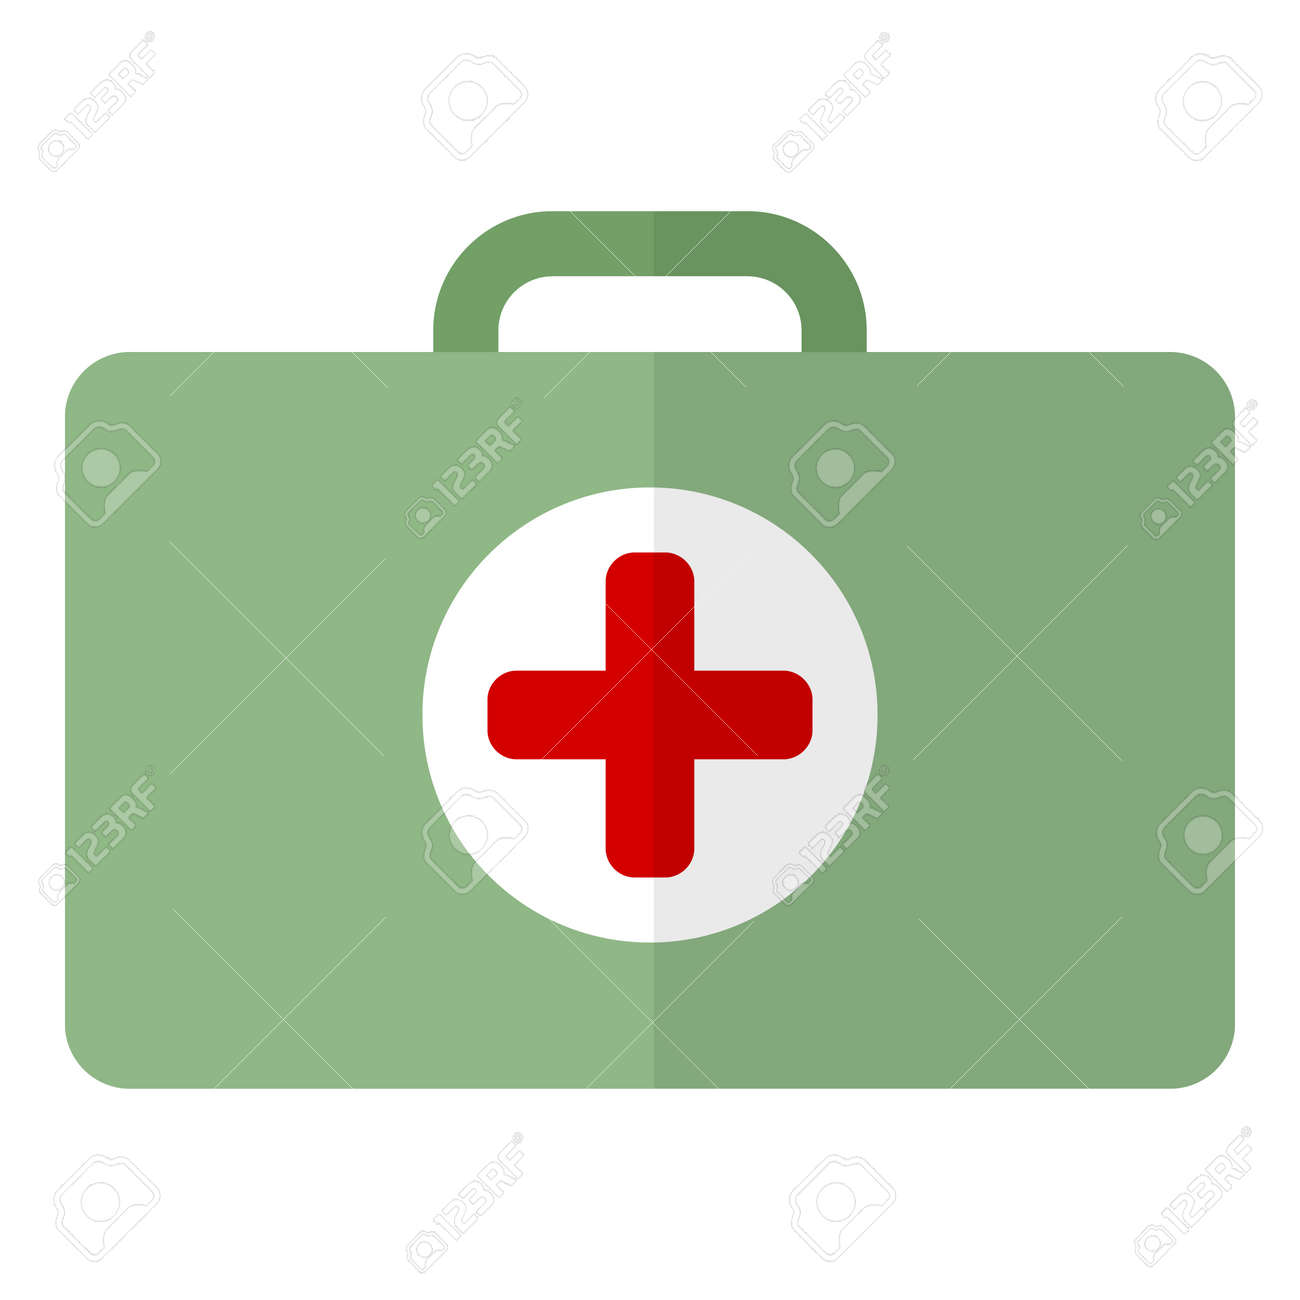 first aid kit flat icon vector sign colorful pictogram isolated rh 123rf com vectorfirstaid serial vector first aid plugin